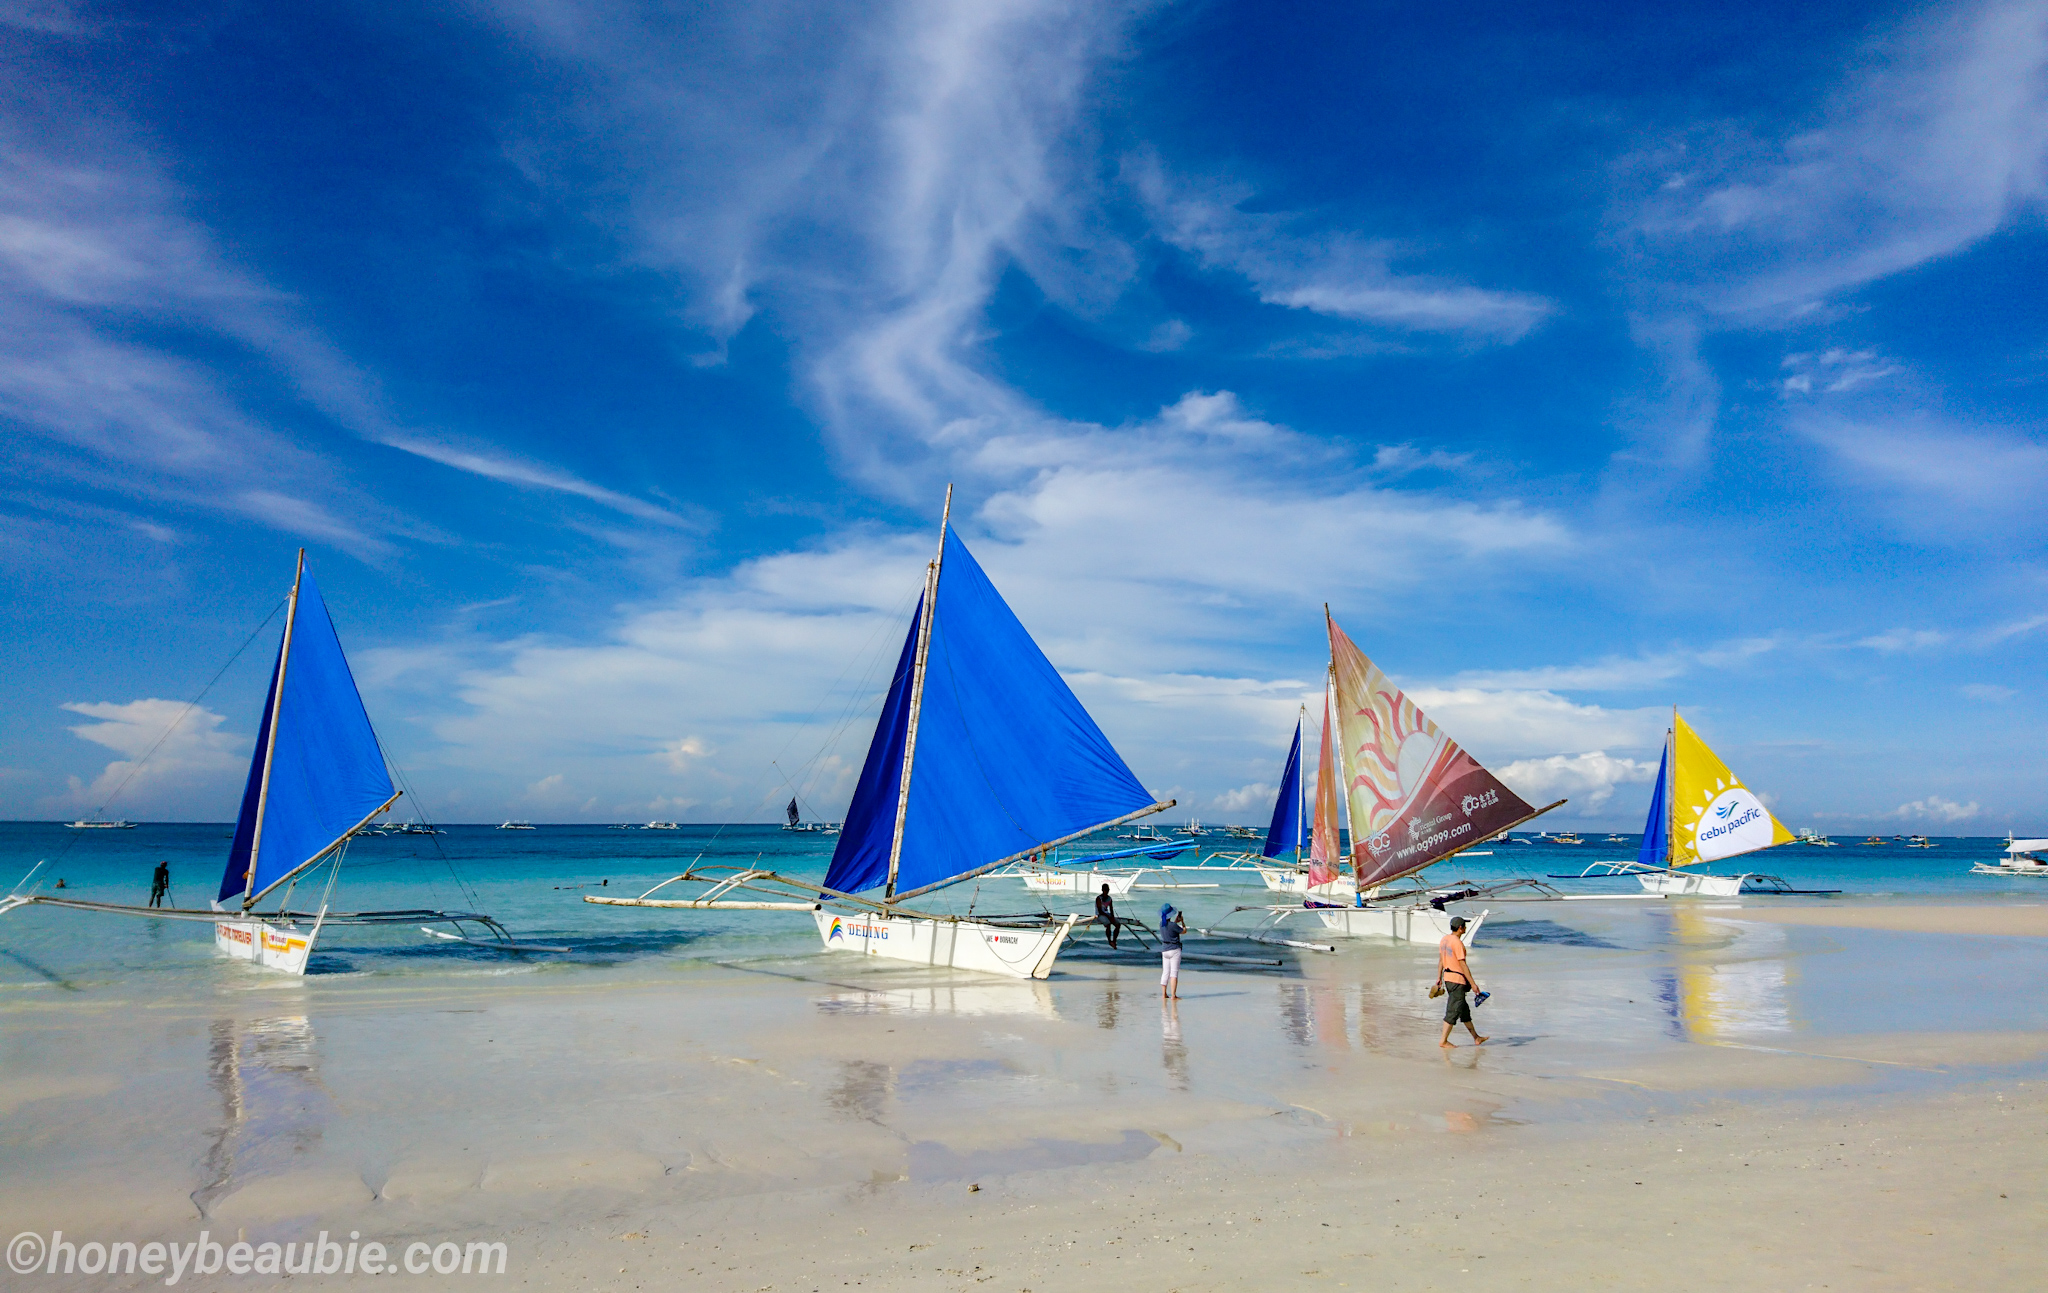 sailboats-on-the-shore-of-boracay-island-philippines